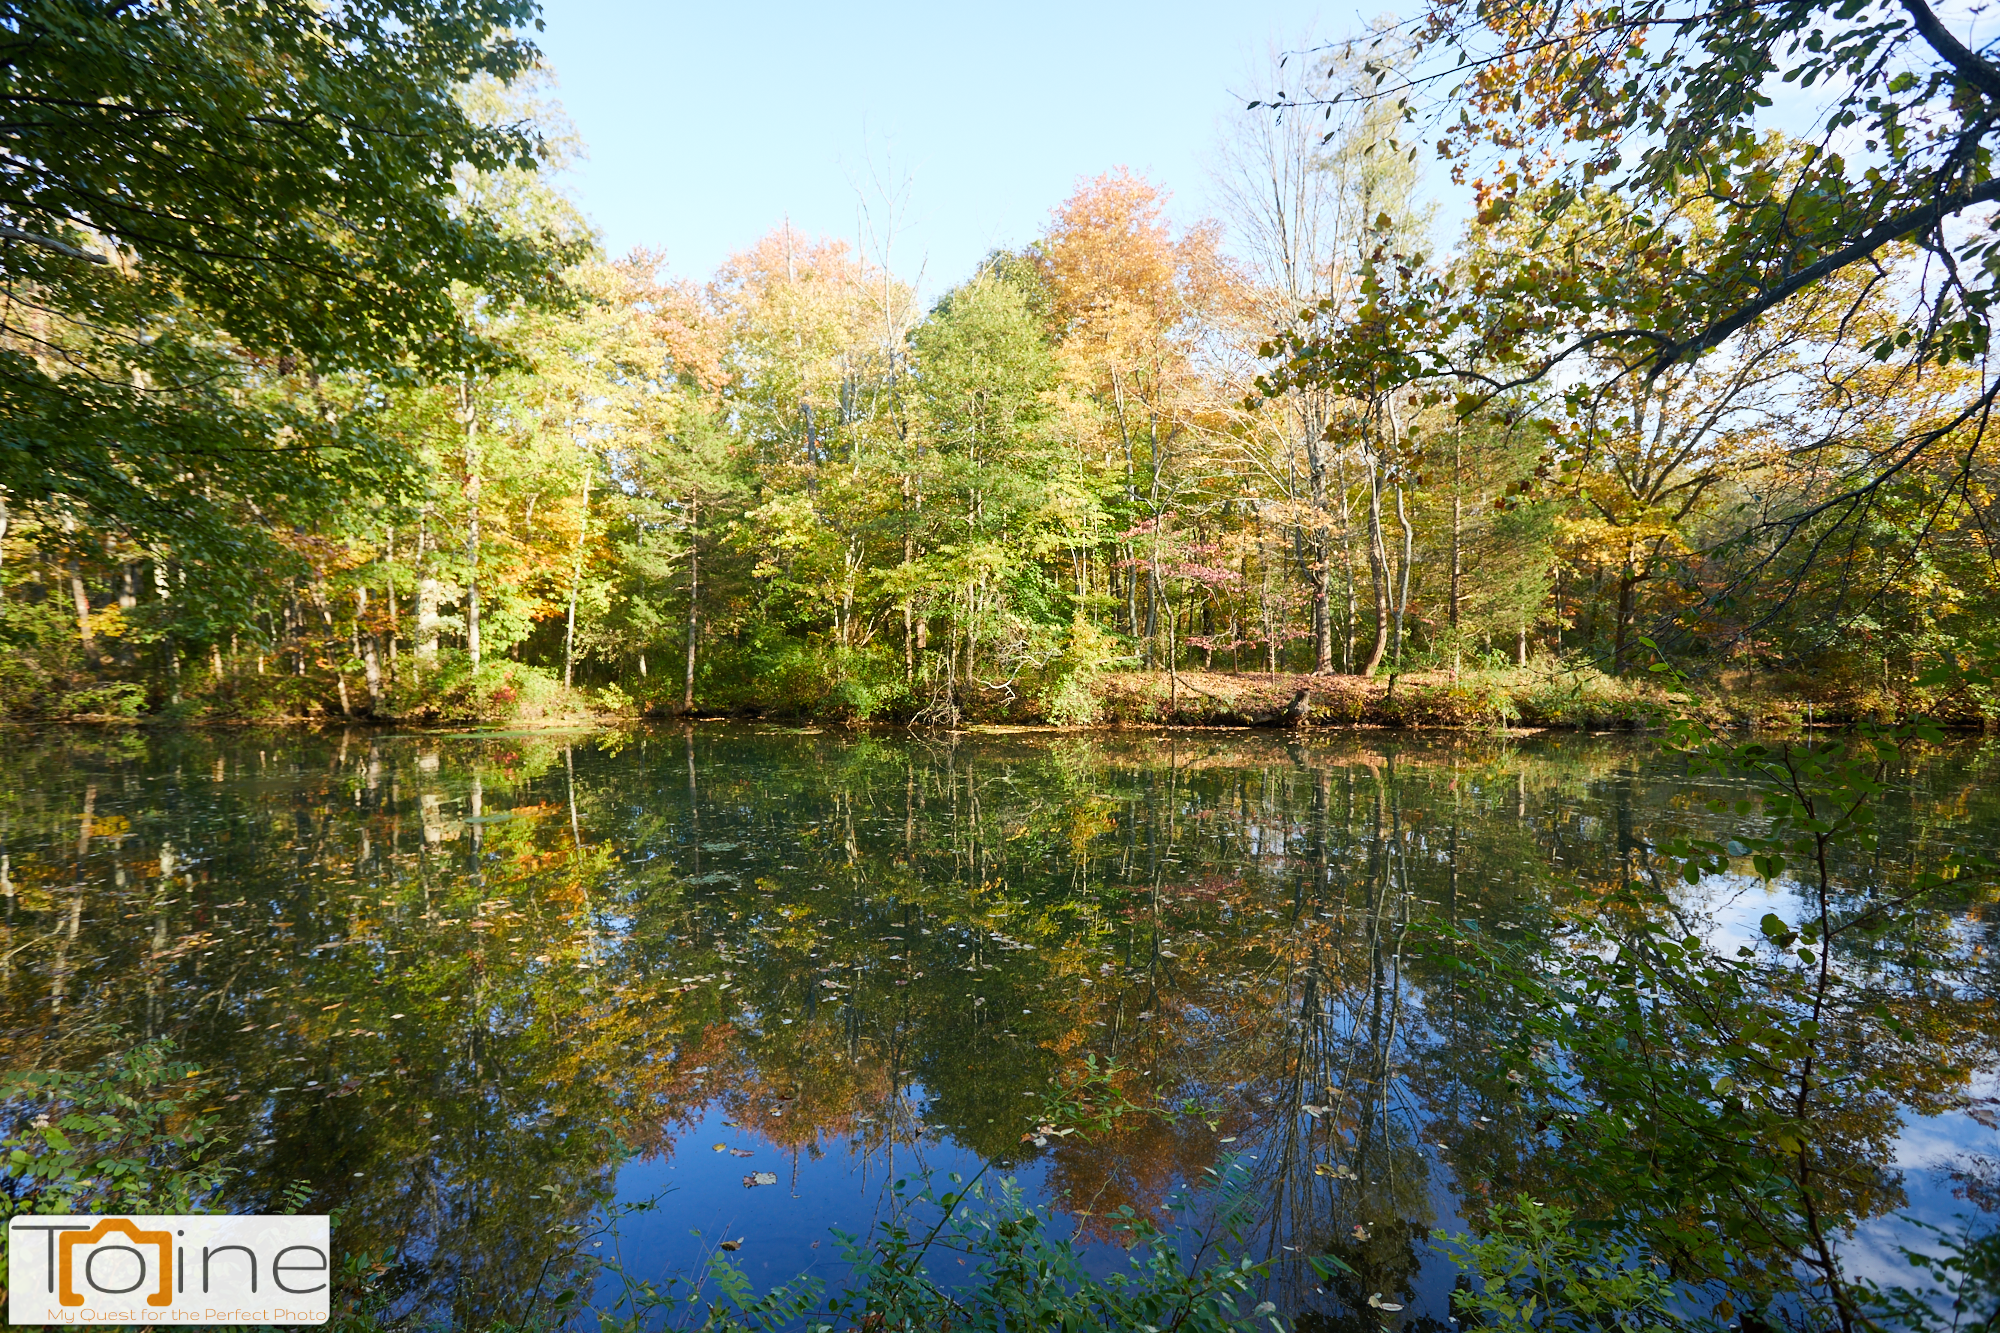 While visiting the Delaware and Raritan Canal State Park, we walked by the canal, loving the weather, and the scenery.